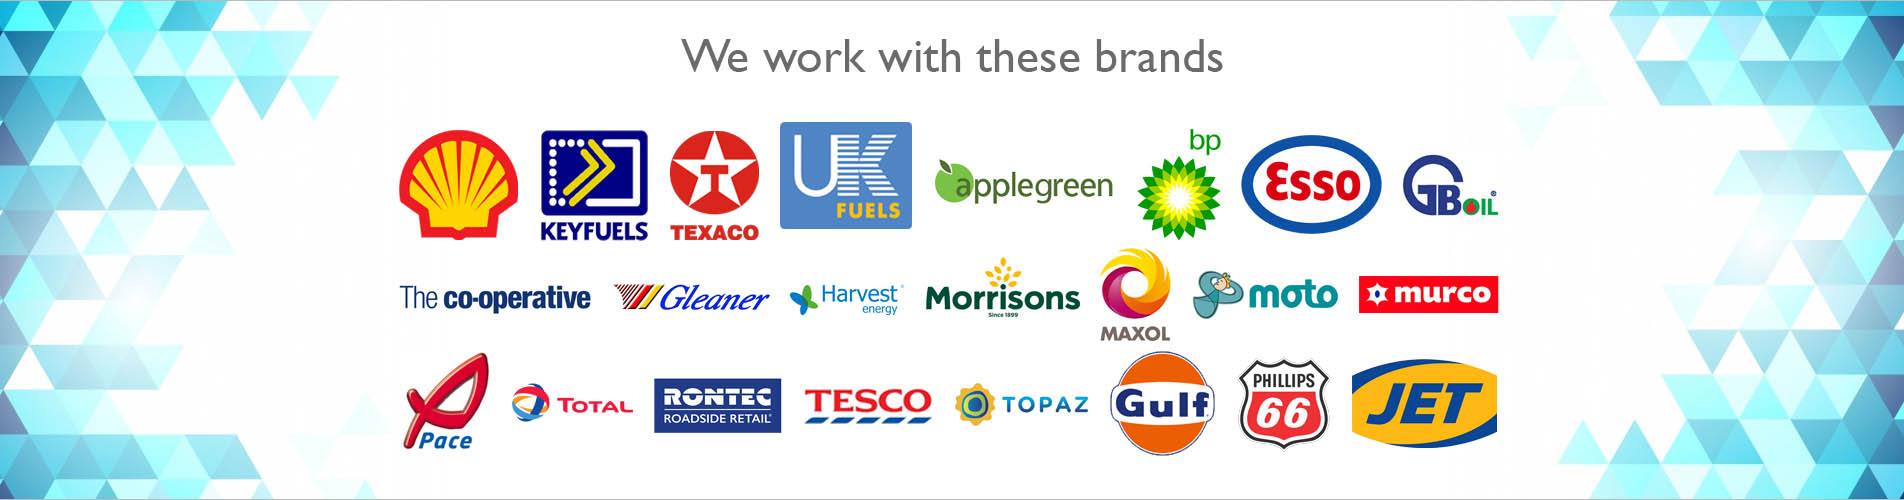 our brands - shell key fuels texaco ukfuels applegreens bp esso gboils cooperative gleaner harvest energy morrisons maxol moto murco pace total rontec tesco topaz gulf phillips66 jet